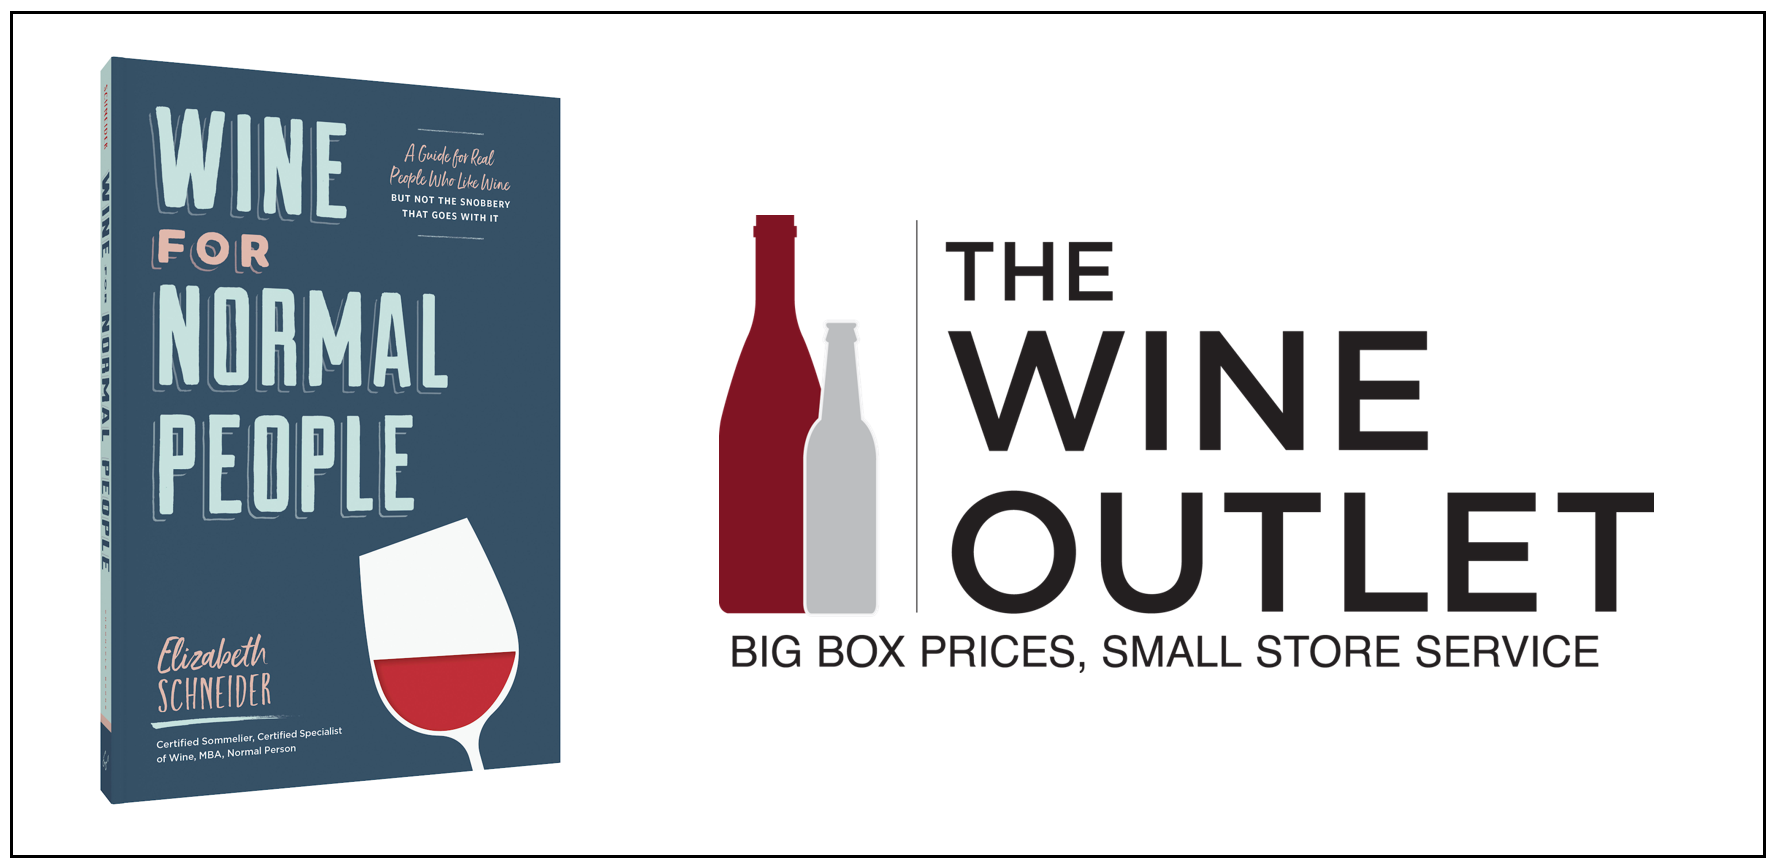 Wine for Normal People with Elizabeth Schneider at the Vienna Wine Outlet